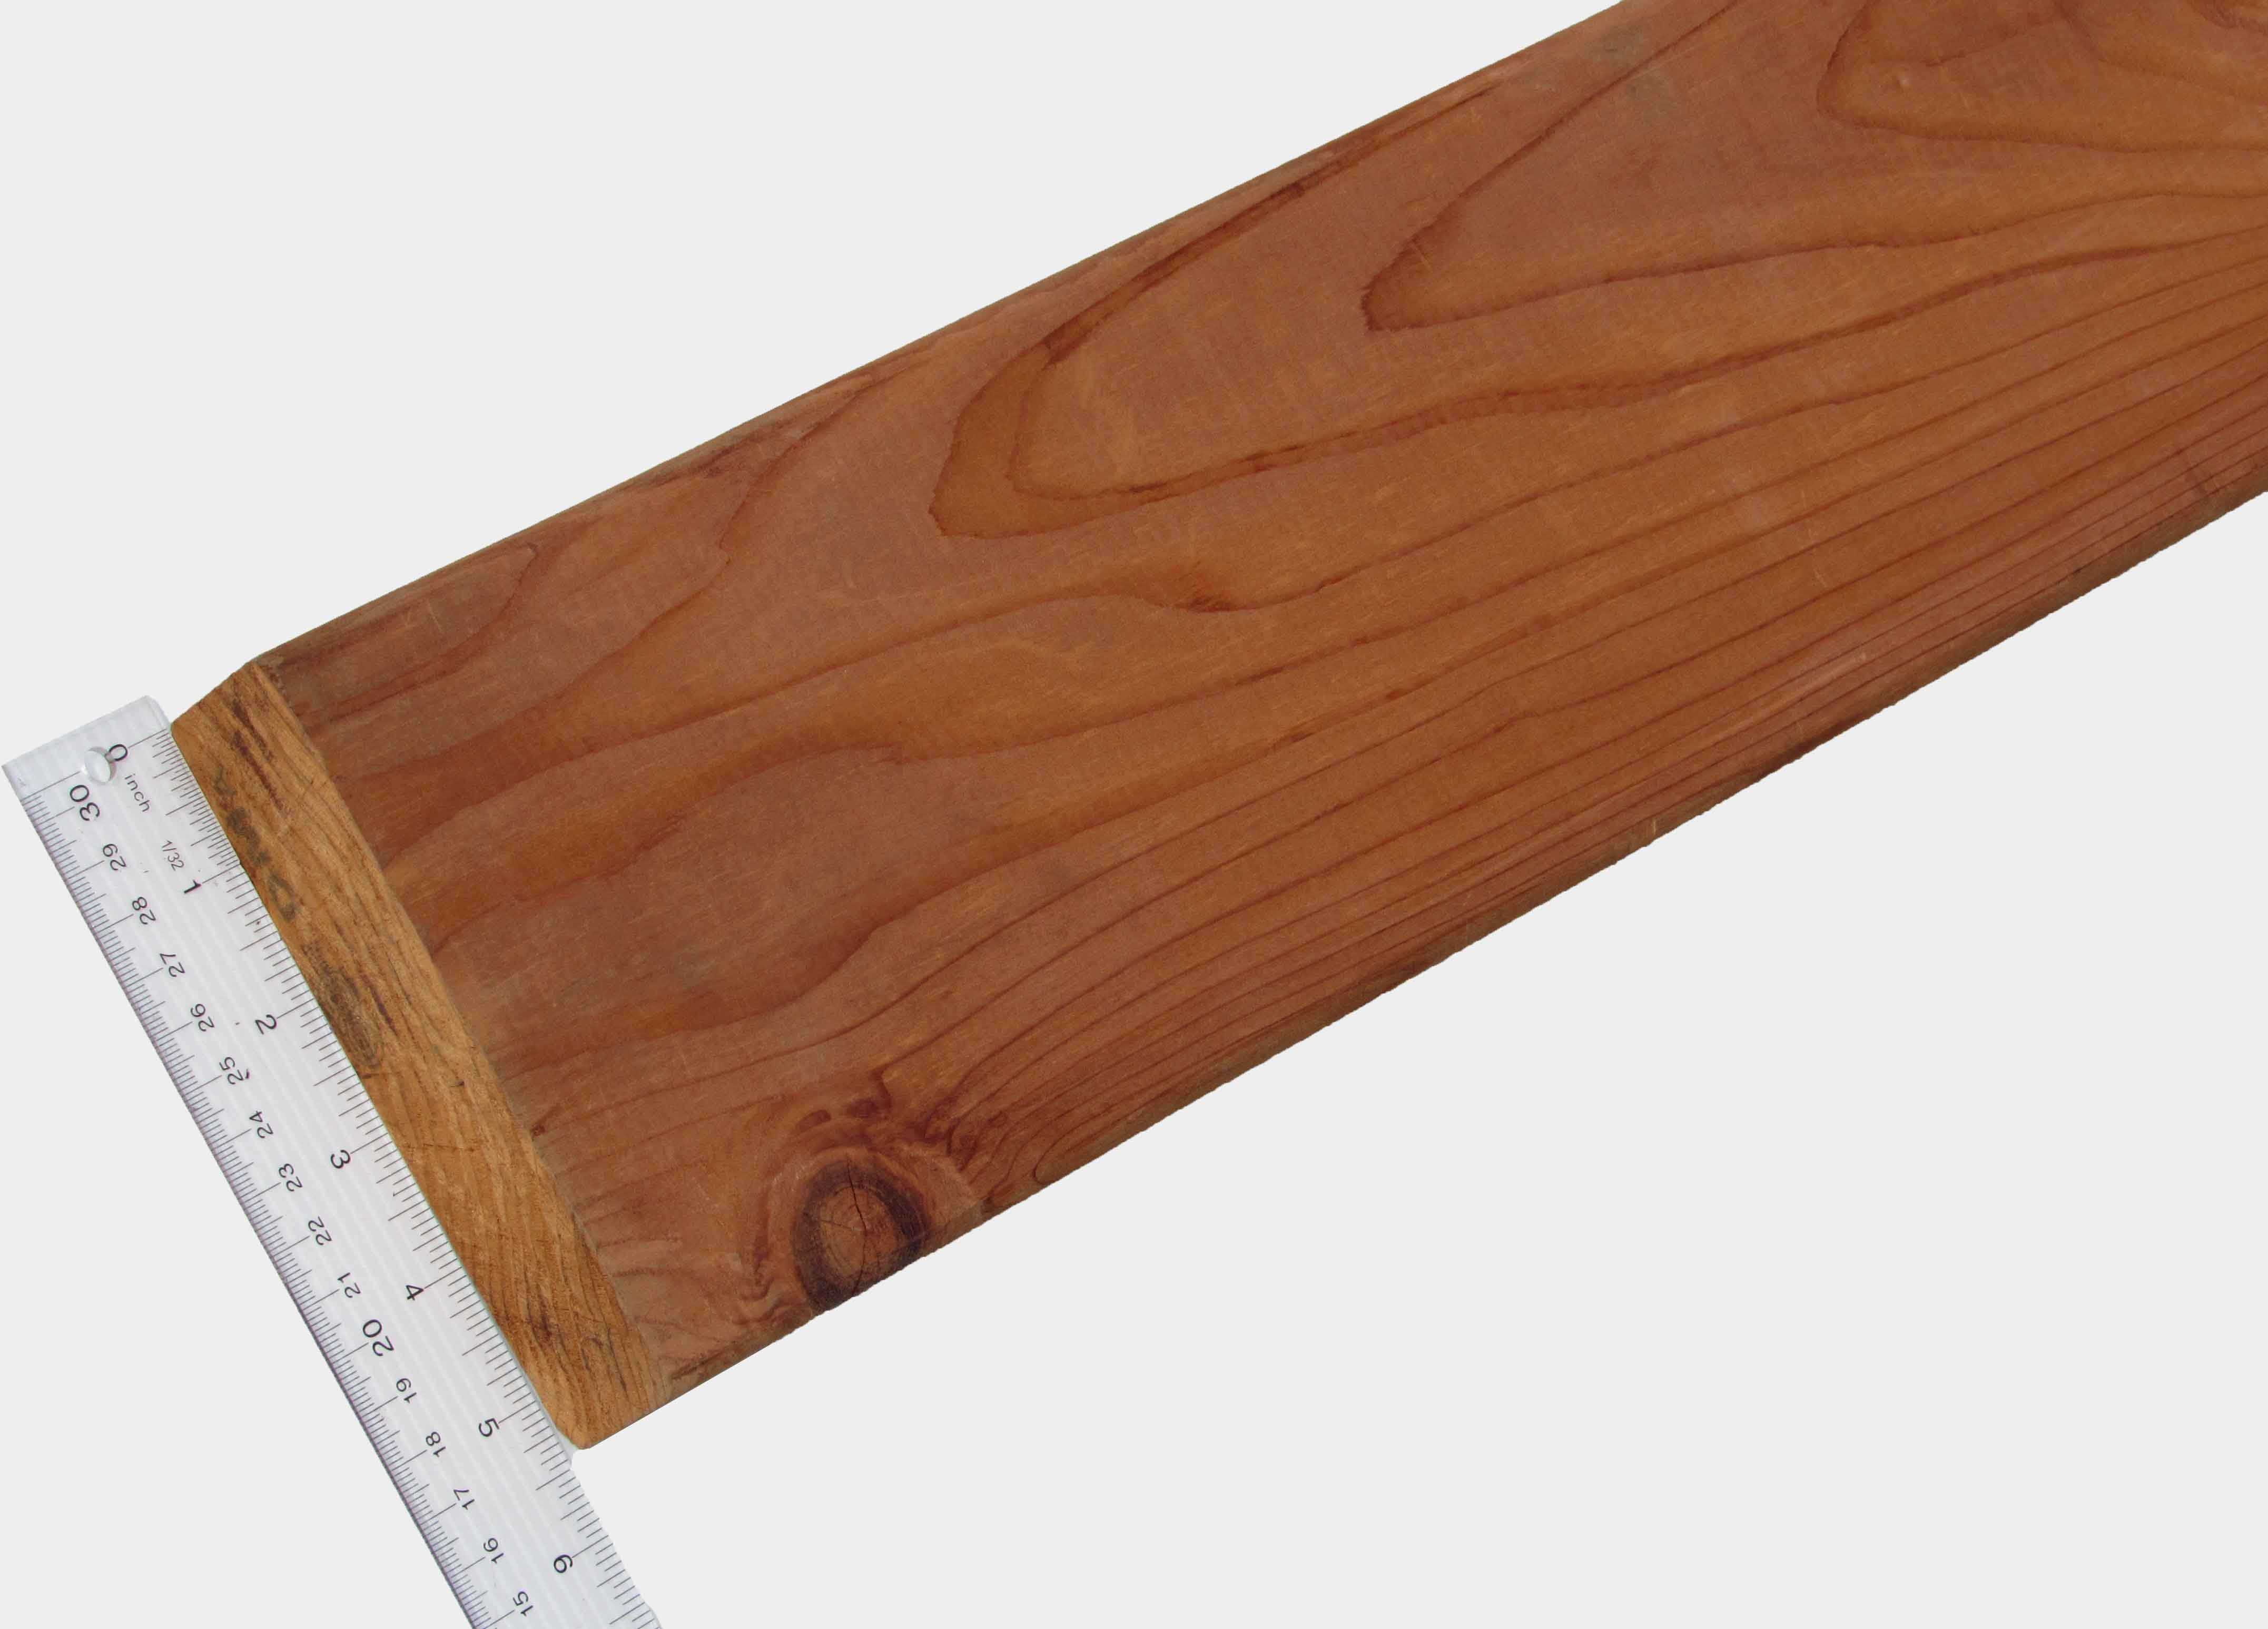 2x6 Construction Redwood Lumber S4s Capitol City Lumber